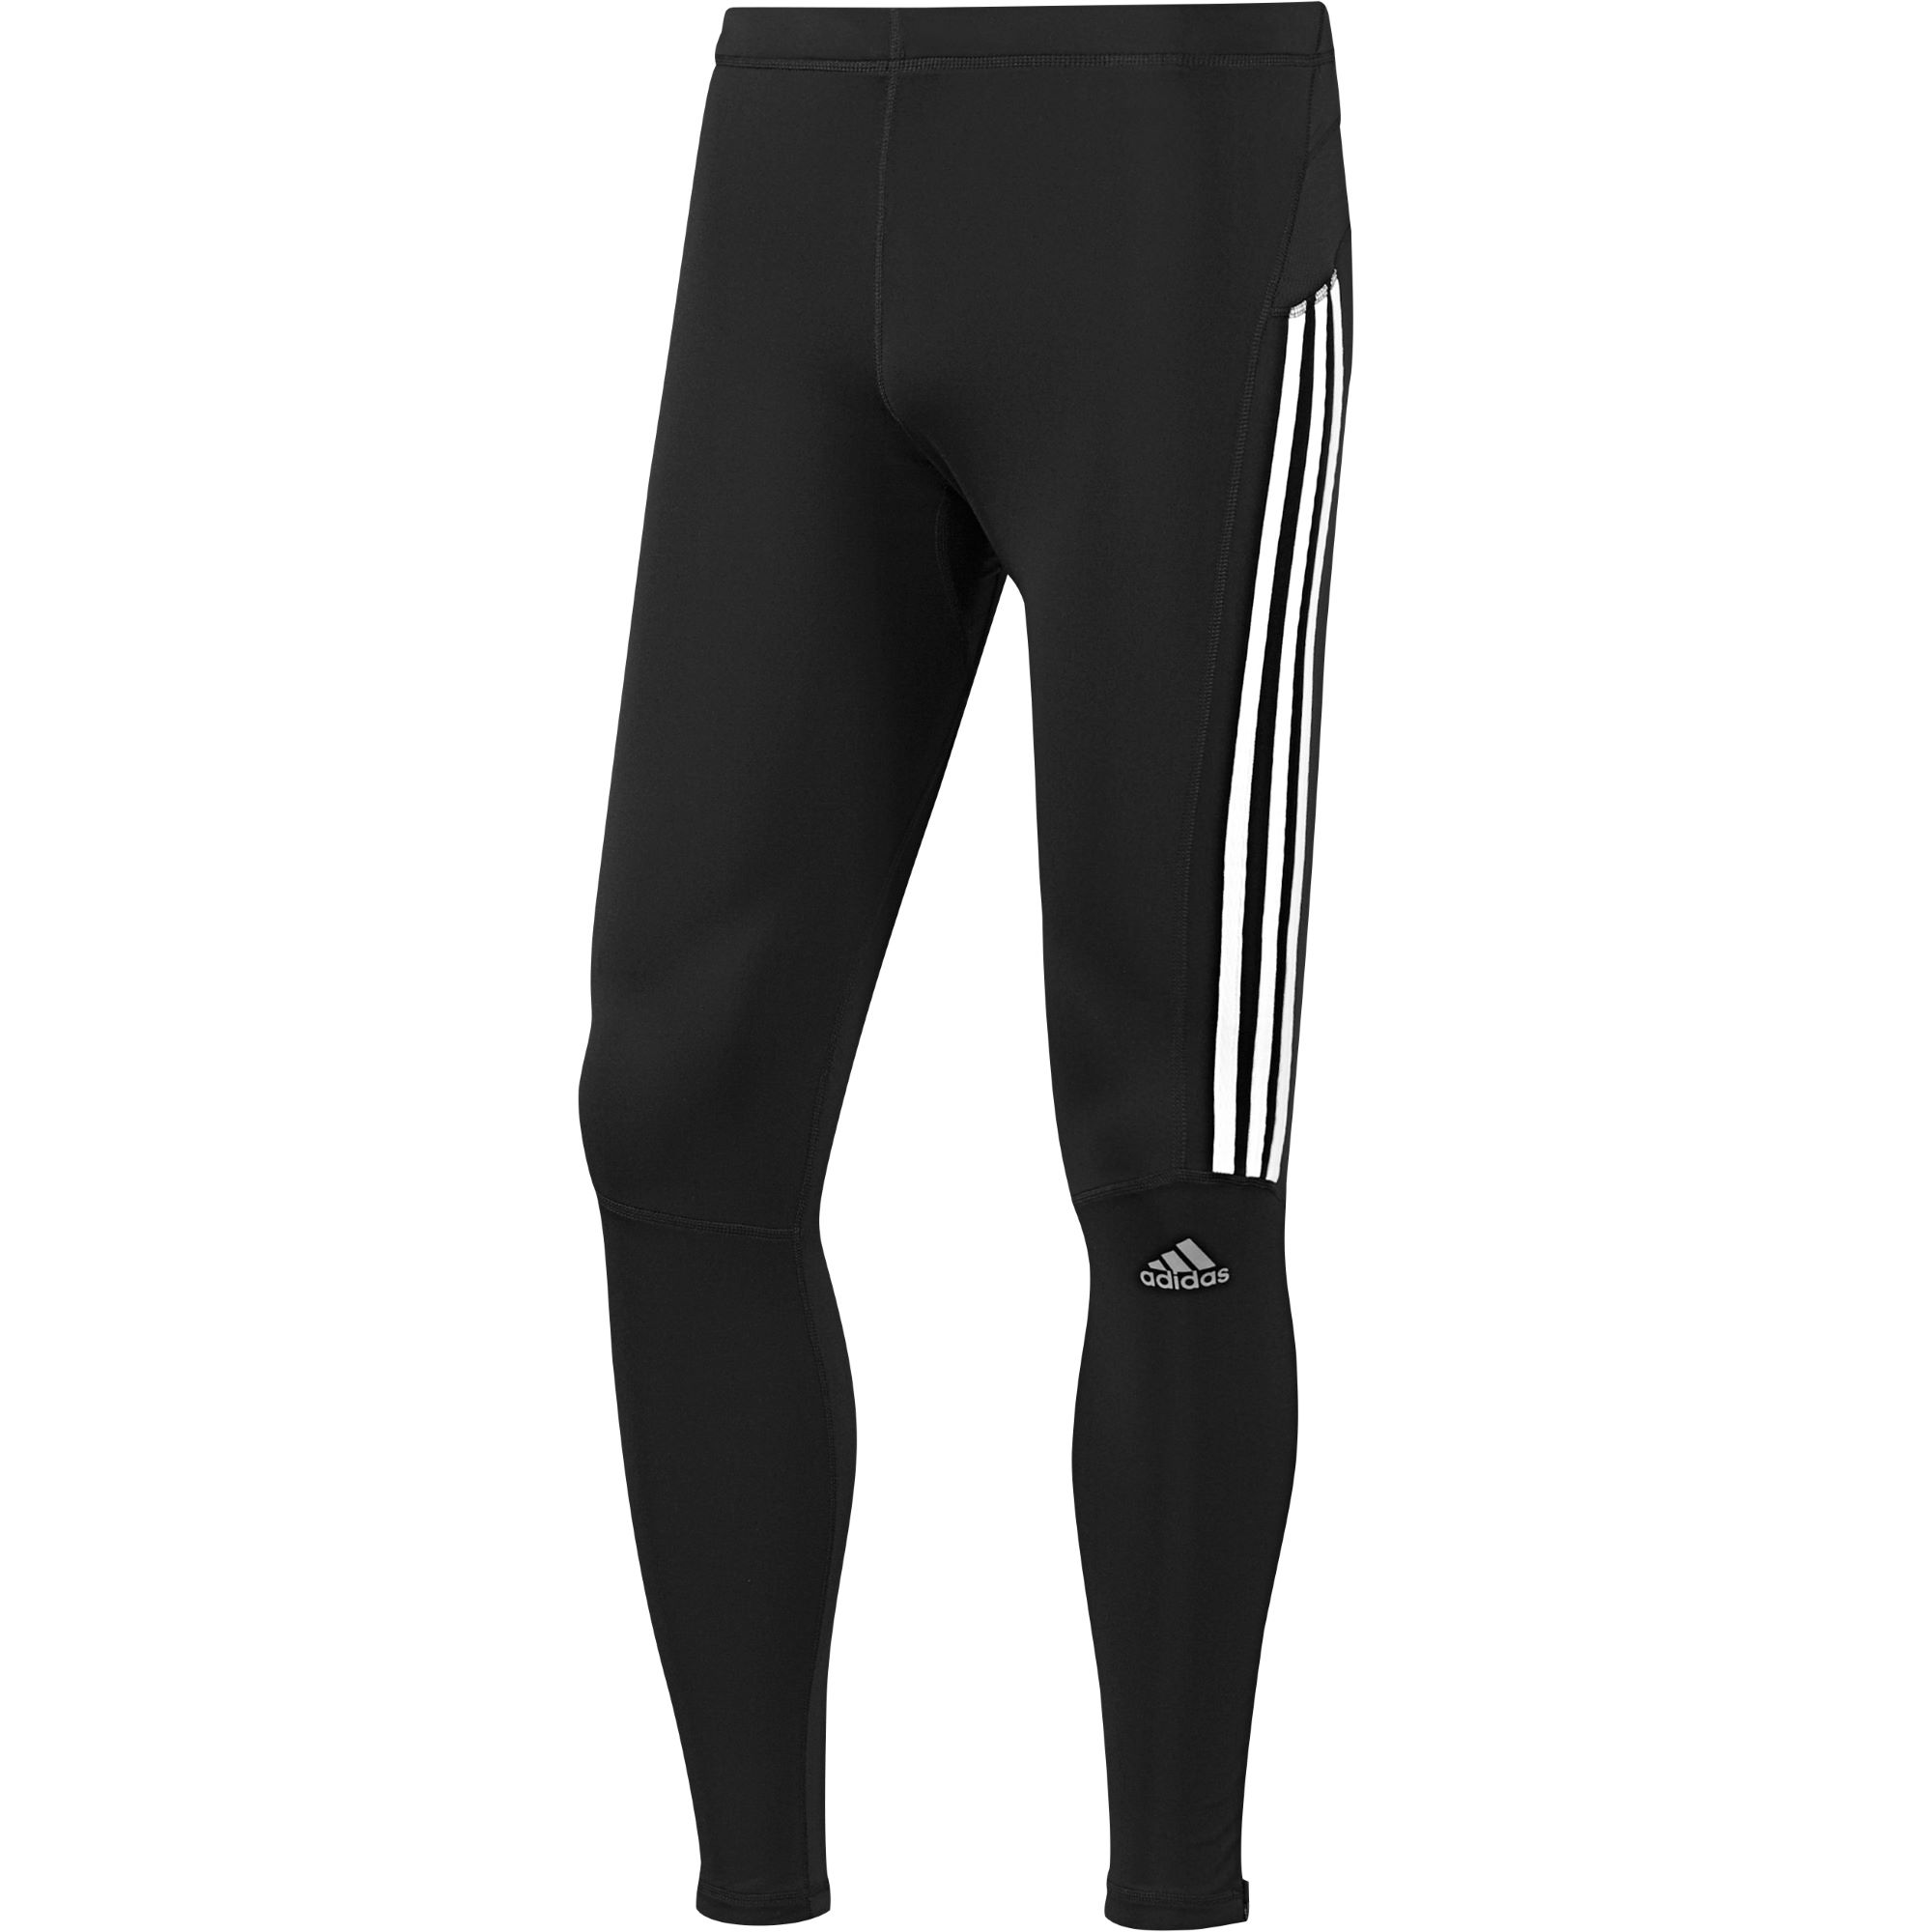 wiggle adidas response long tight aw14 running tights. Black Bedroom Furniture Sets. Home Design Ideas